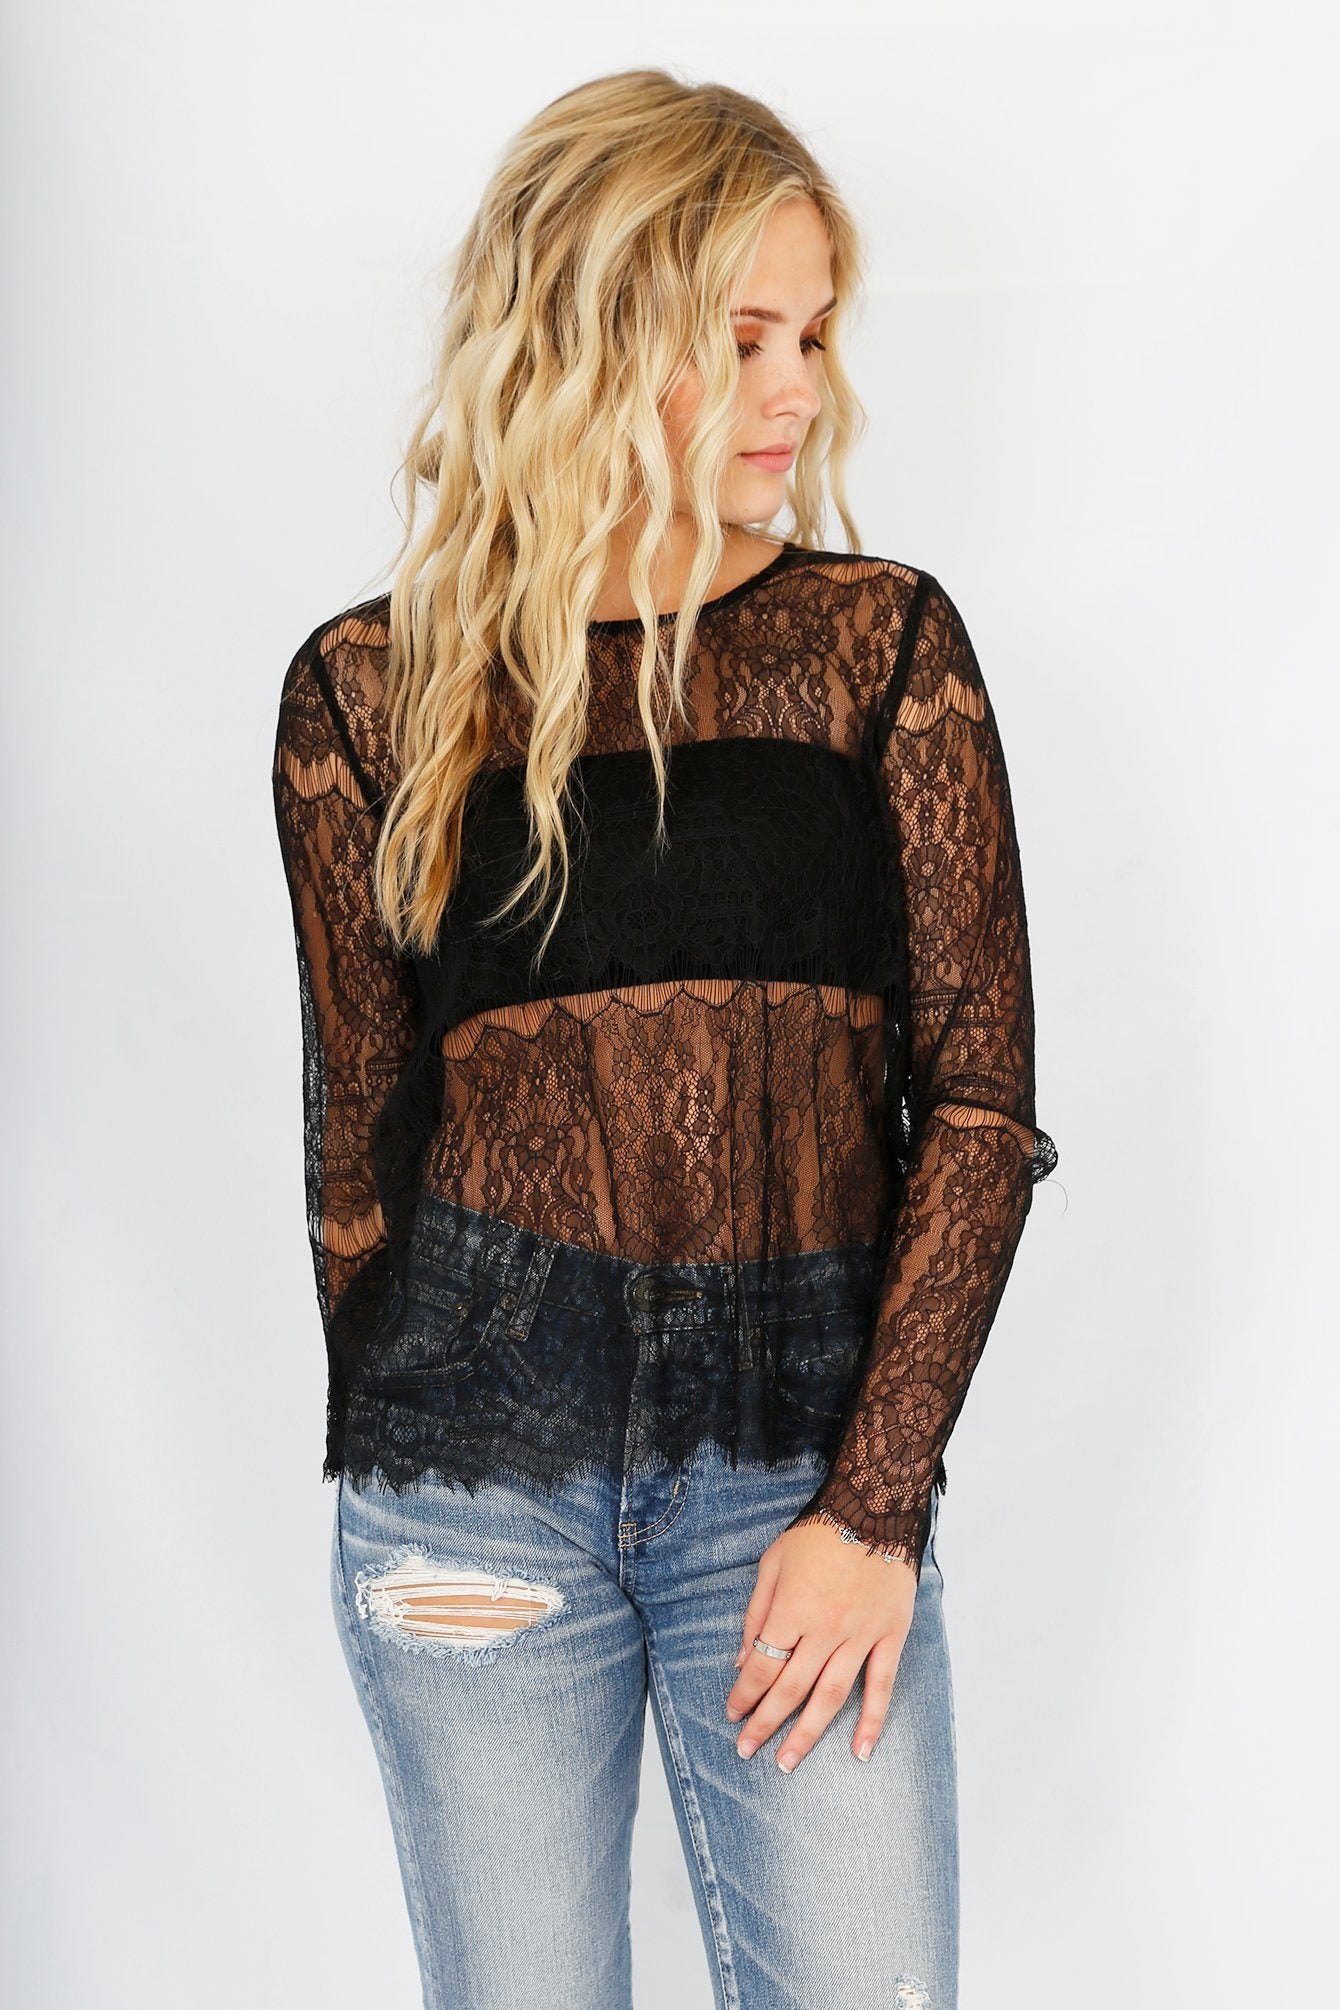 CAMI NYC | Asher Lace Top - Black